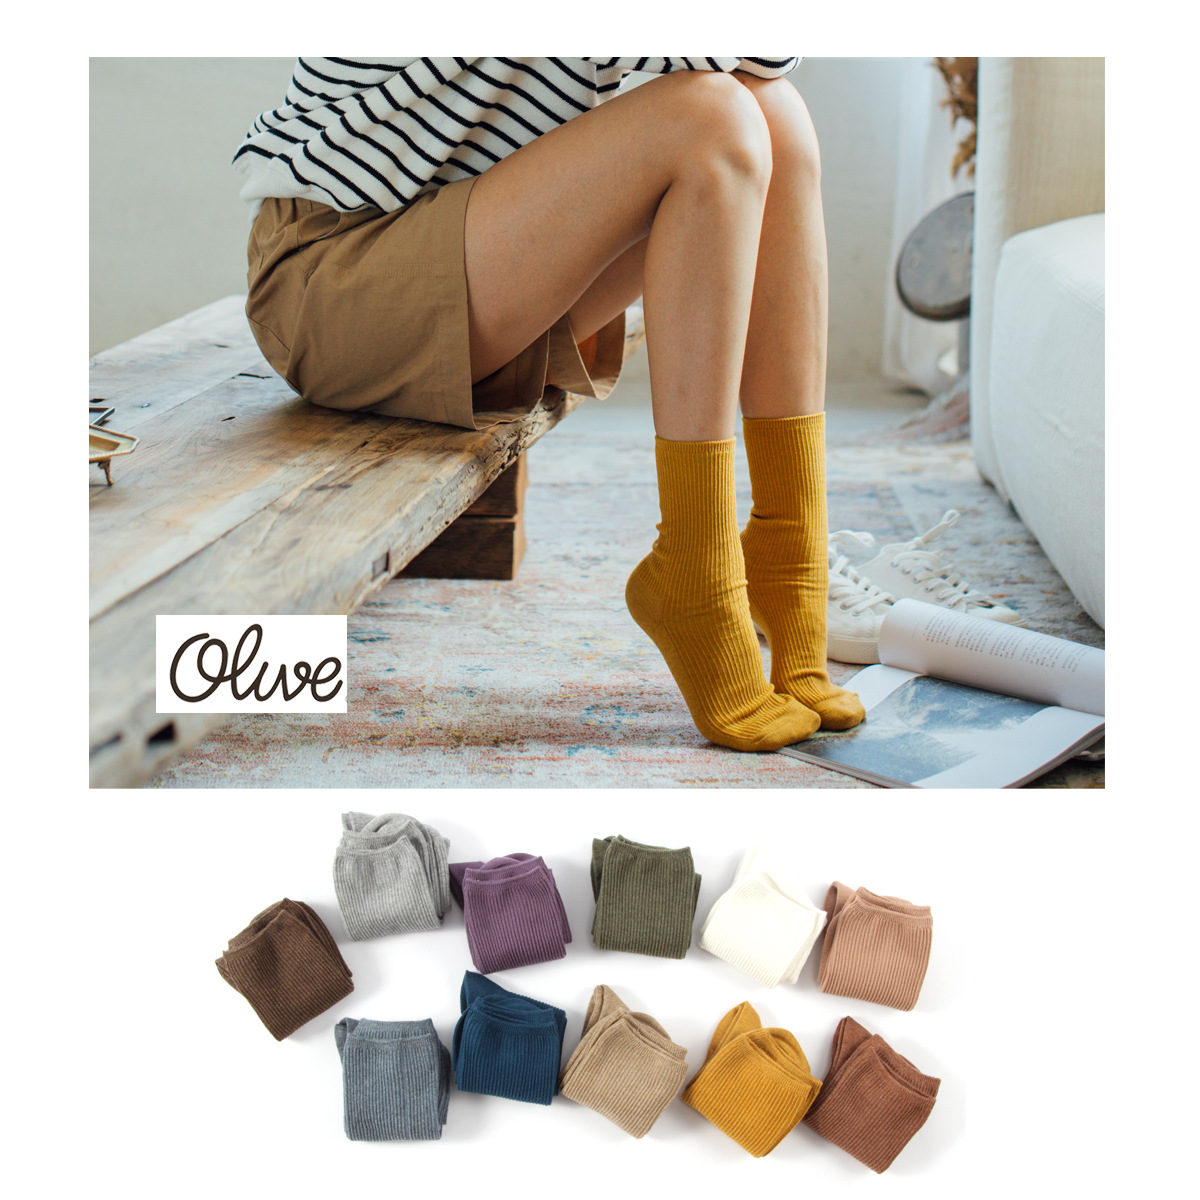 Socks Woman 2019 Autumn New Fashion Women's Socks Solid Color Cotton 1 Pair Color Girls Casual Breathable Ladies  Socks Women